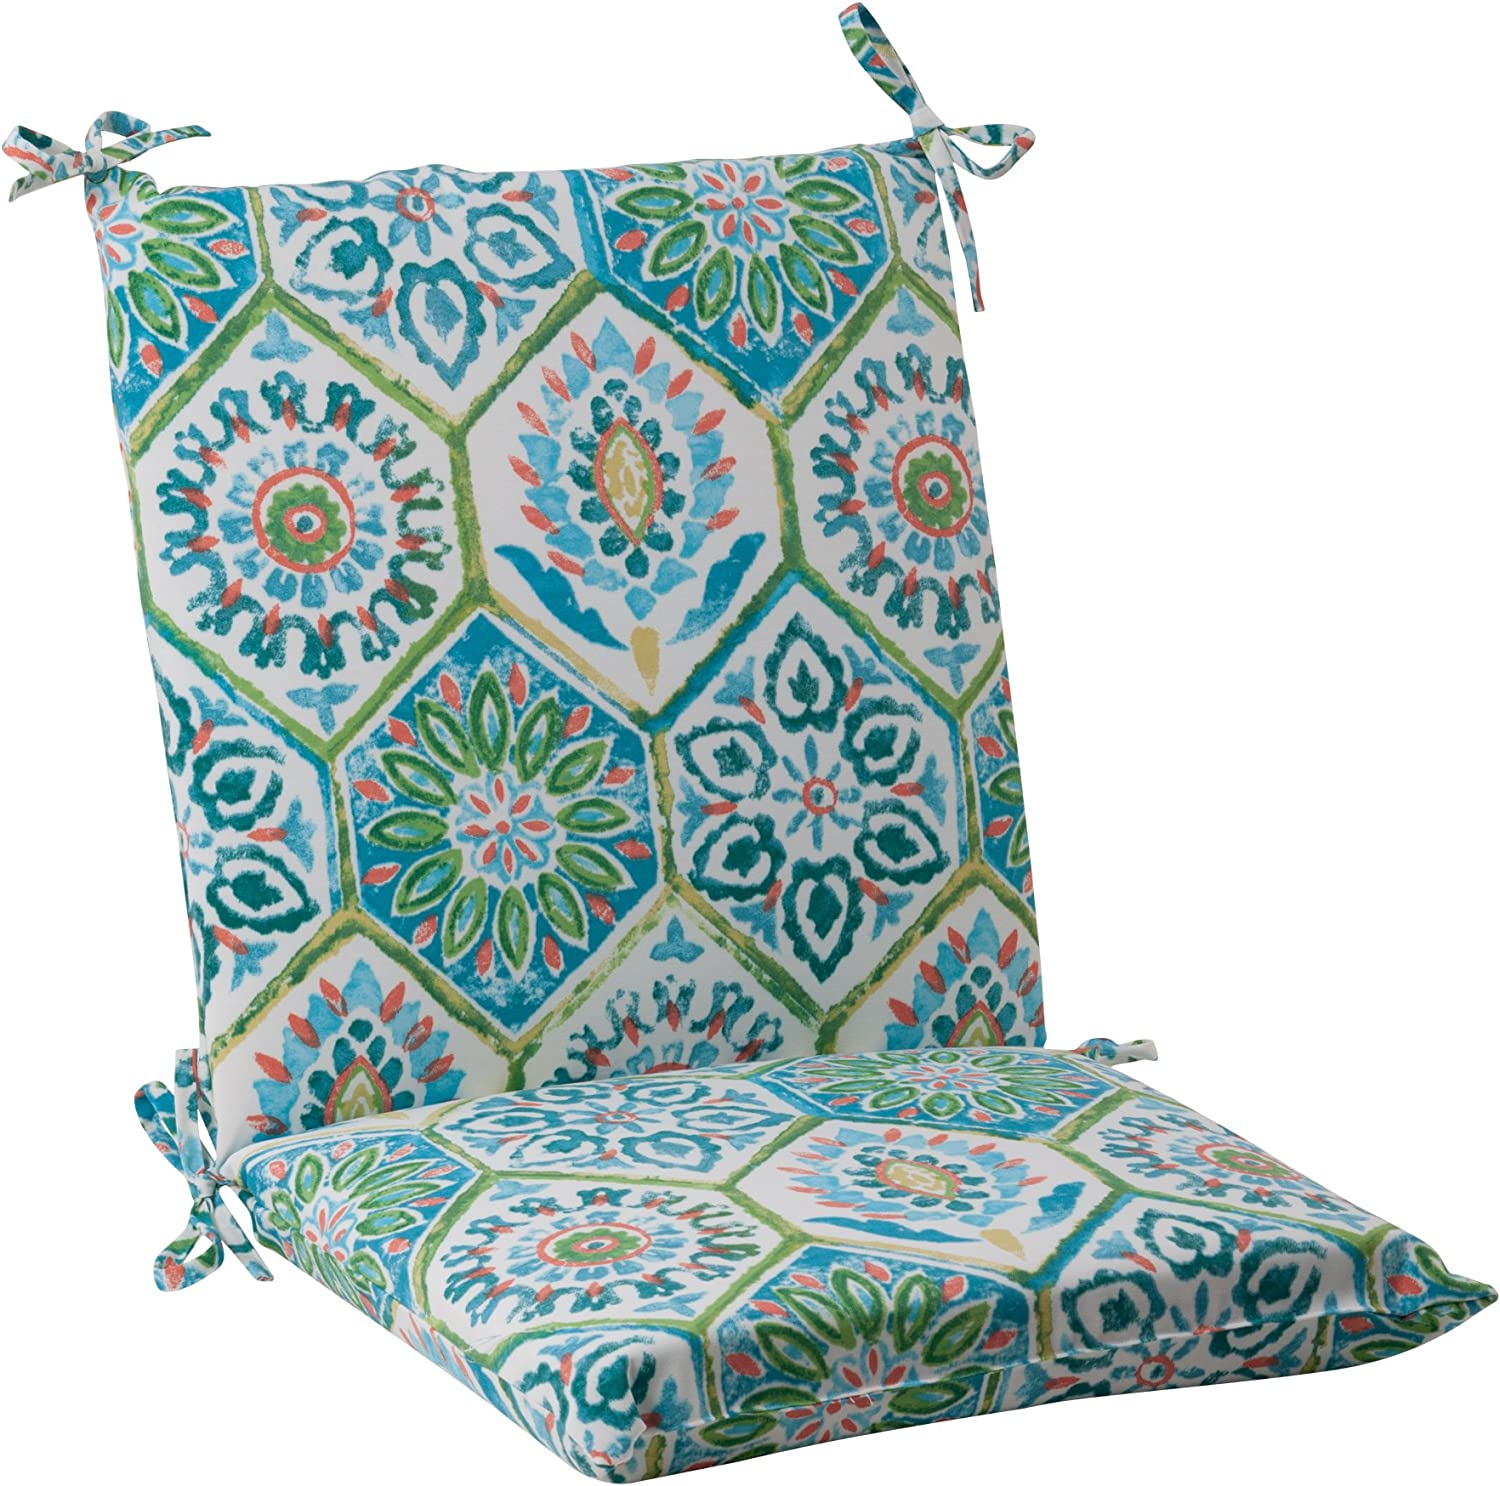 Pillow Perfect Outdoor Summer Breeze Squared Chair Cushion, Pool